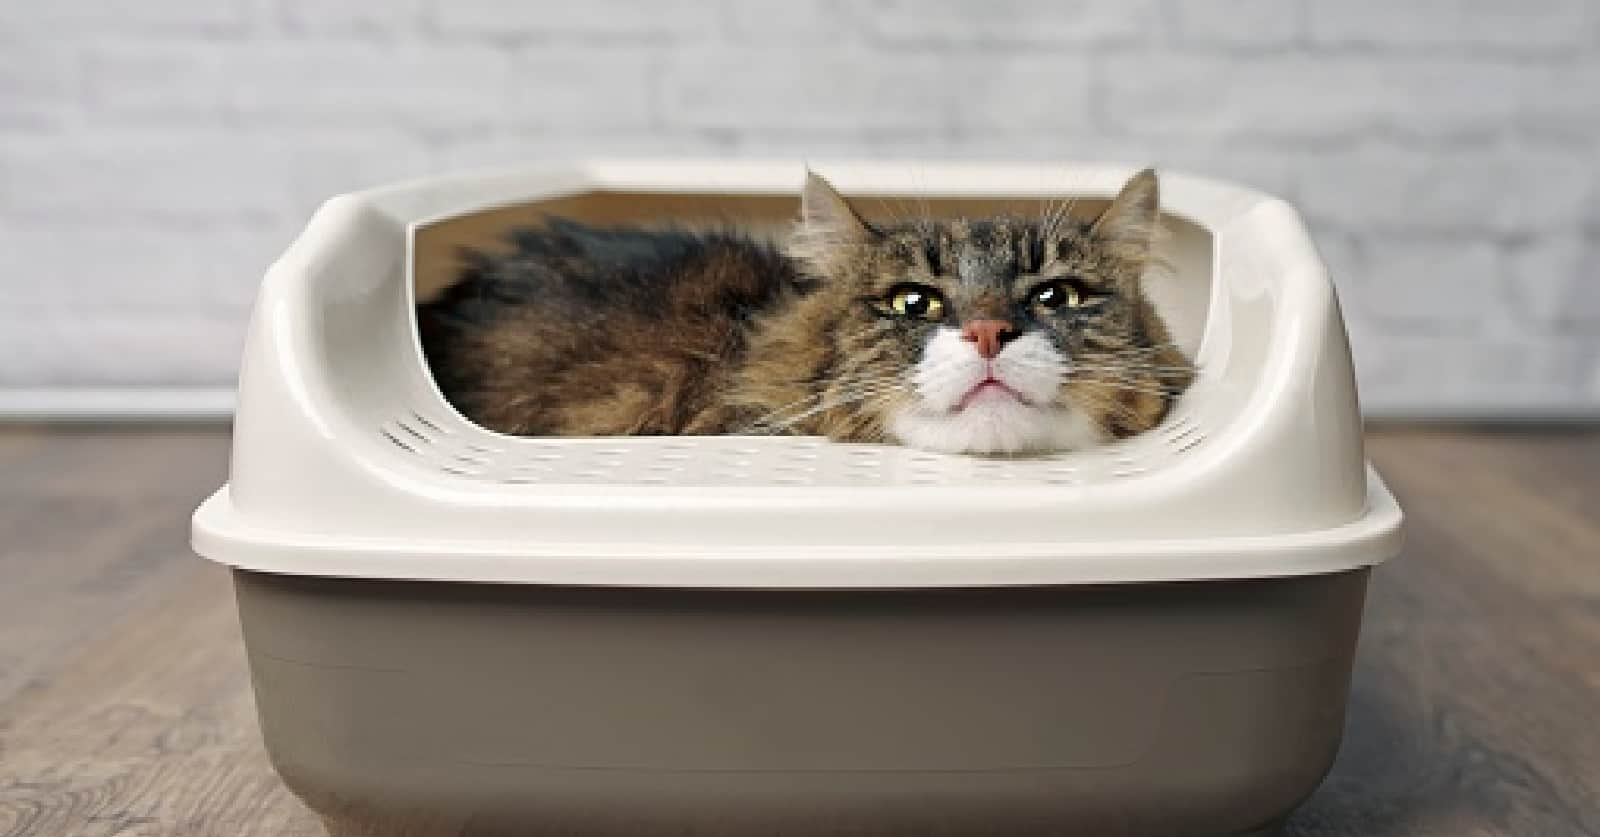 Can two cats use the same litter box? If so, are there reasons why they shouldn't? Read on for a complete and detailed guide!